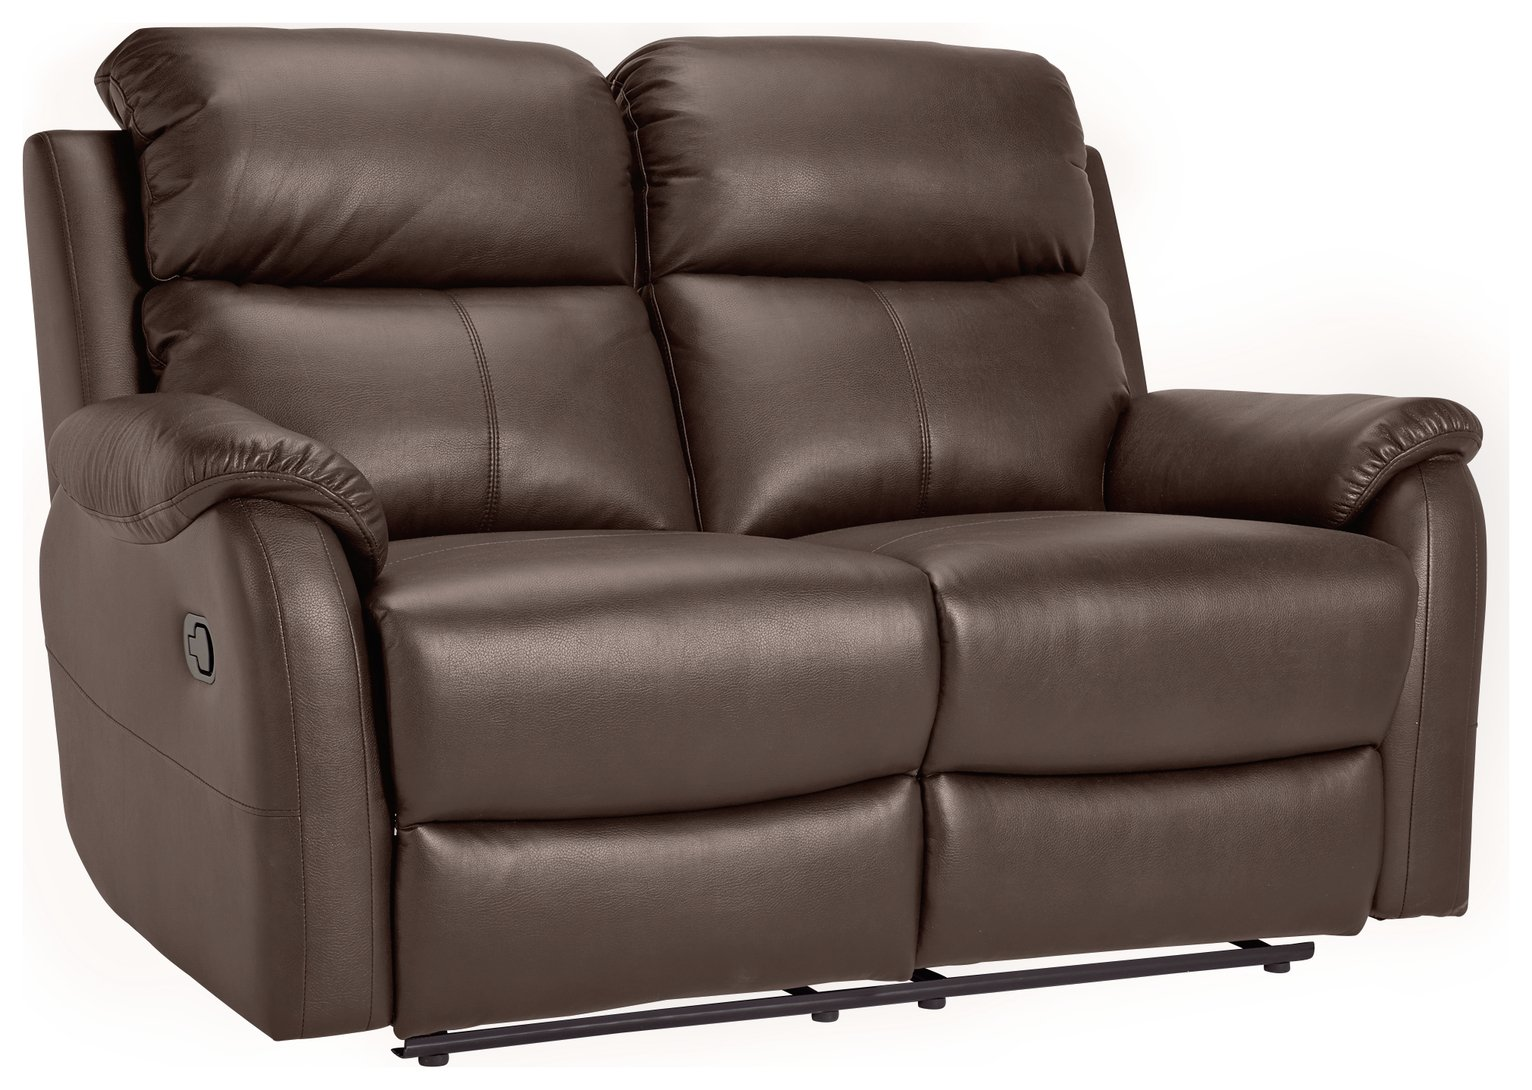 Buy Argos Home Tyler 2 Seater Leather Recliner Sofa Chocolate